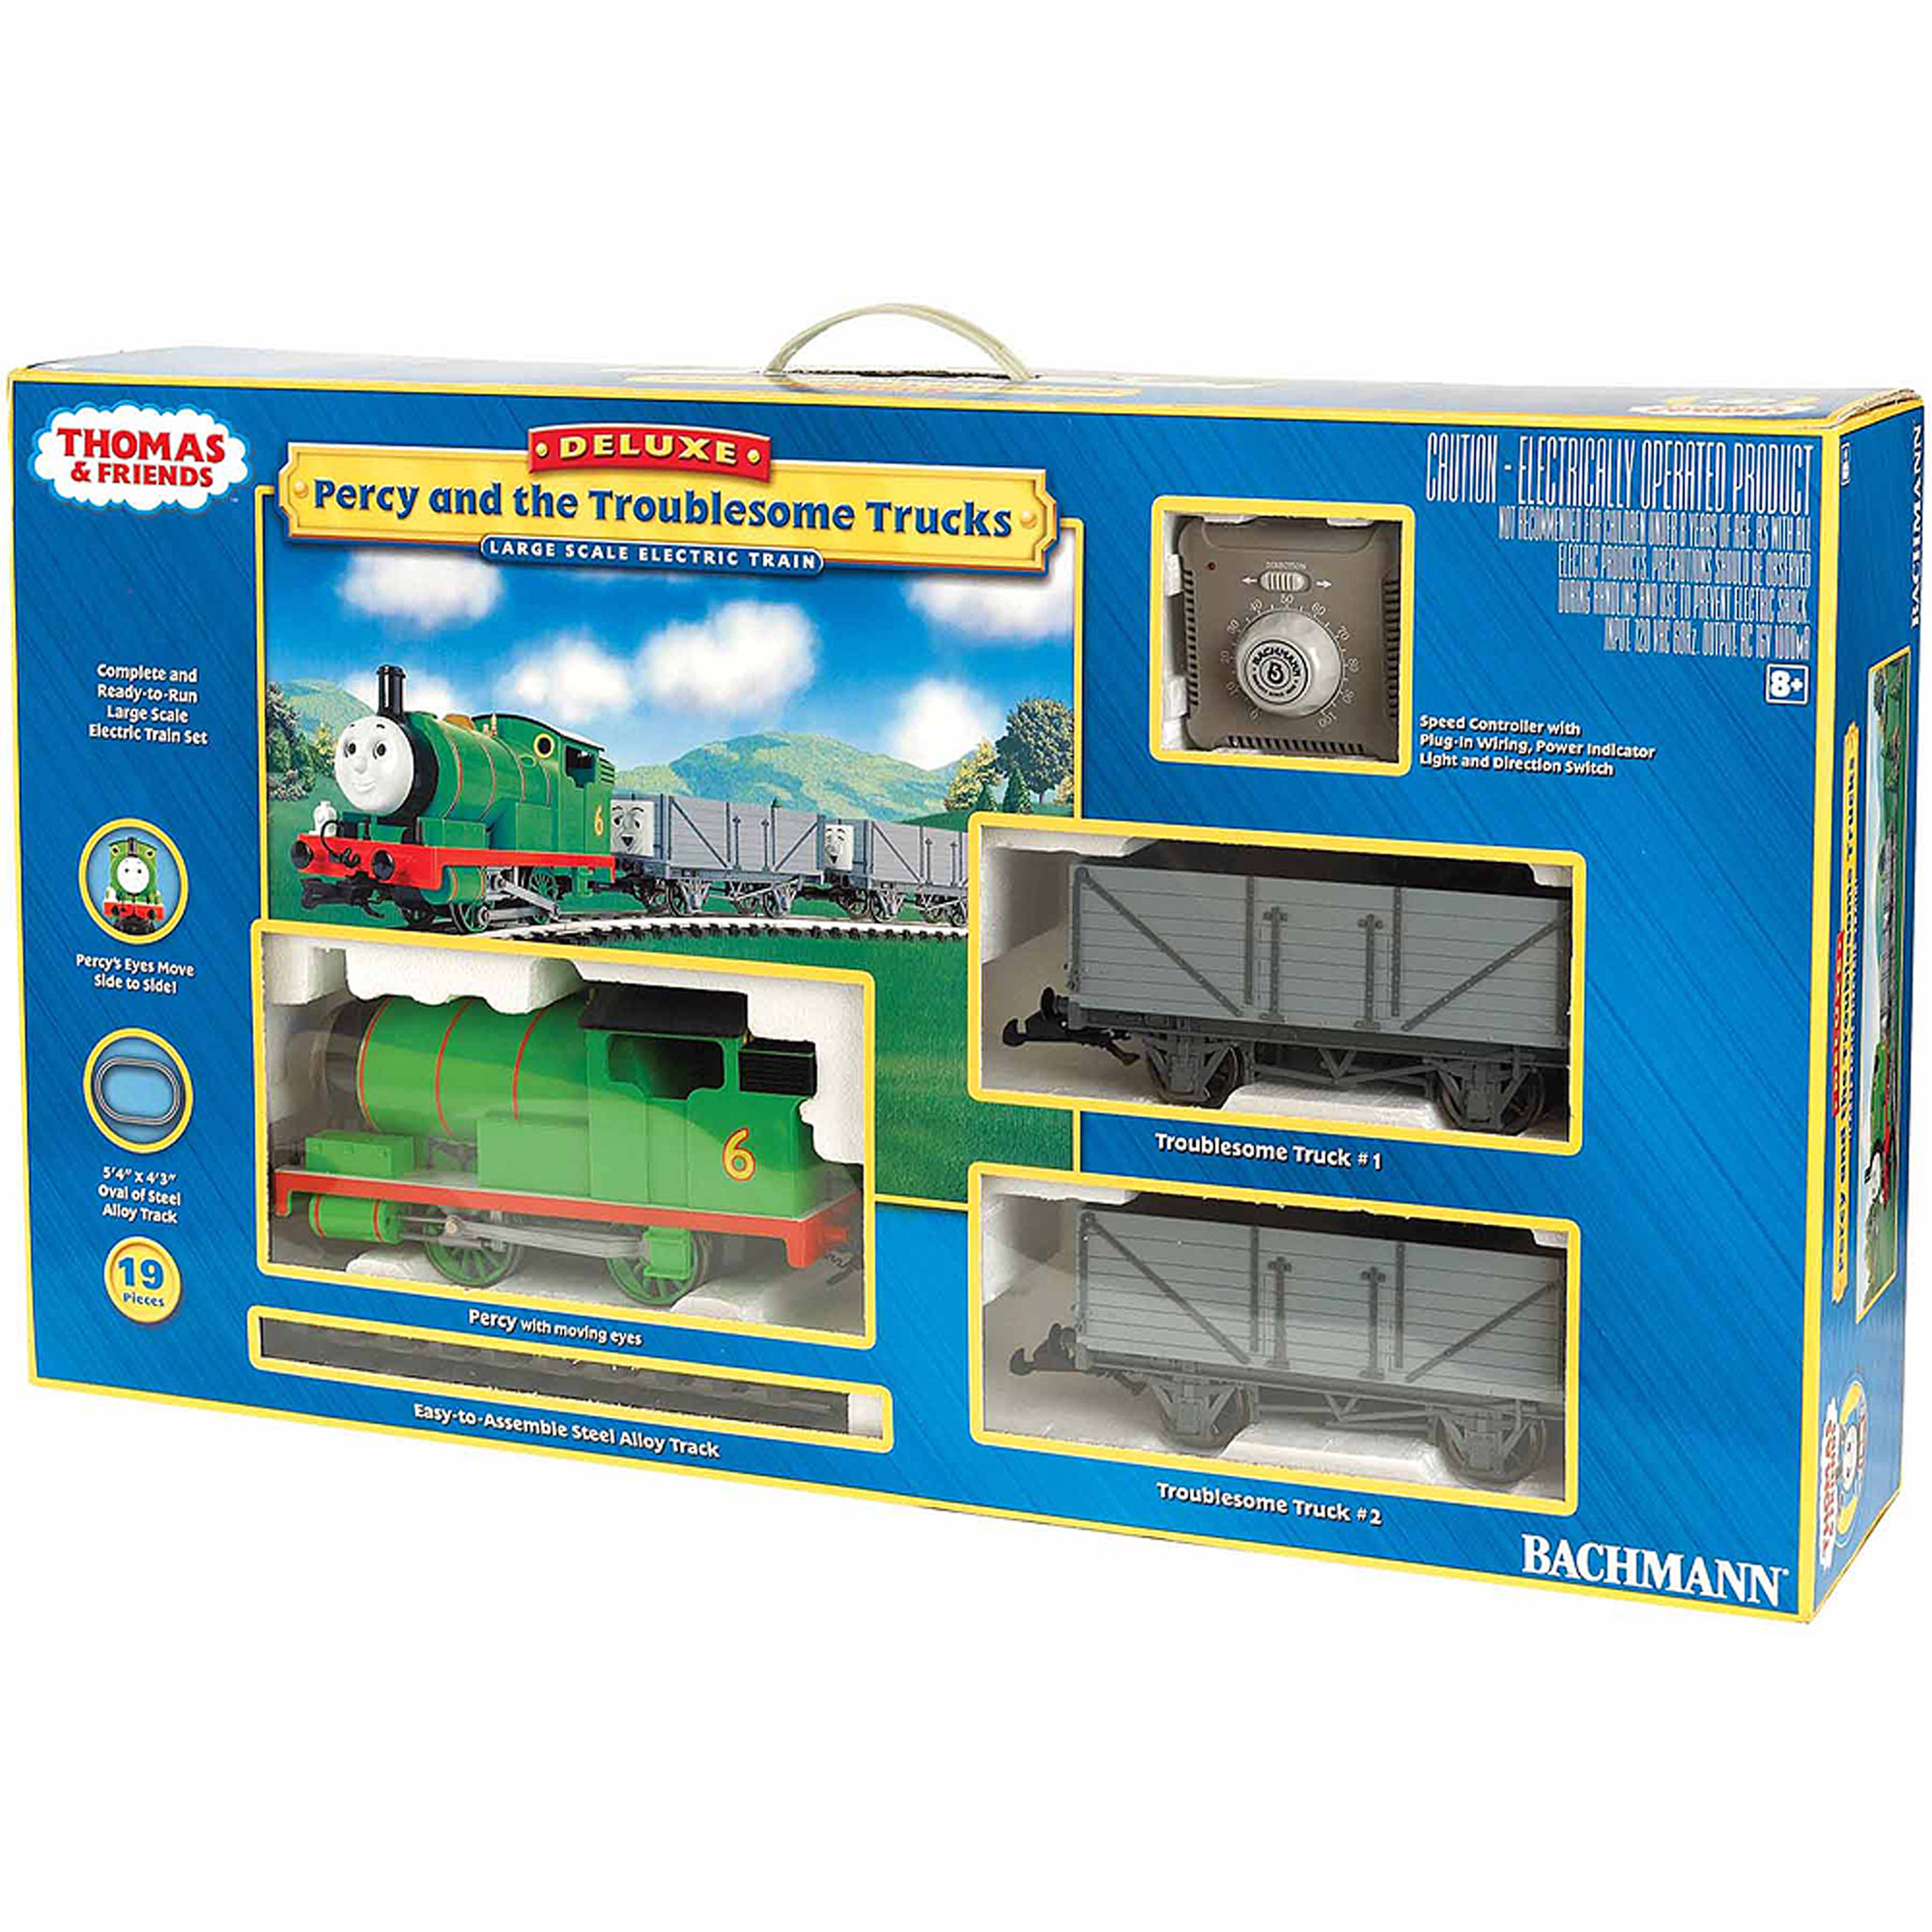 "Bachmann Trains Thomas and Friends Percy And The Troublesome Trucks , Large ""G"" Scale Ready-to-Run Electric Train Set"